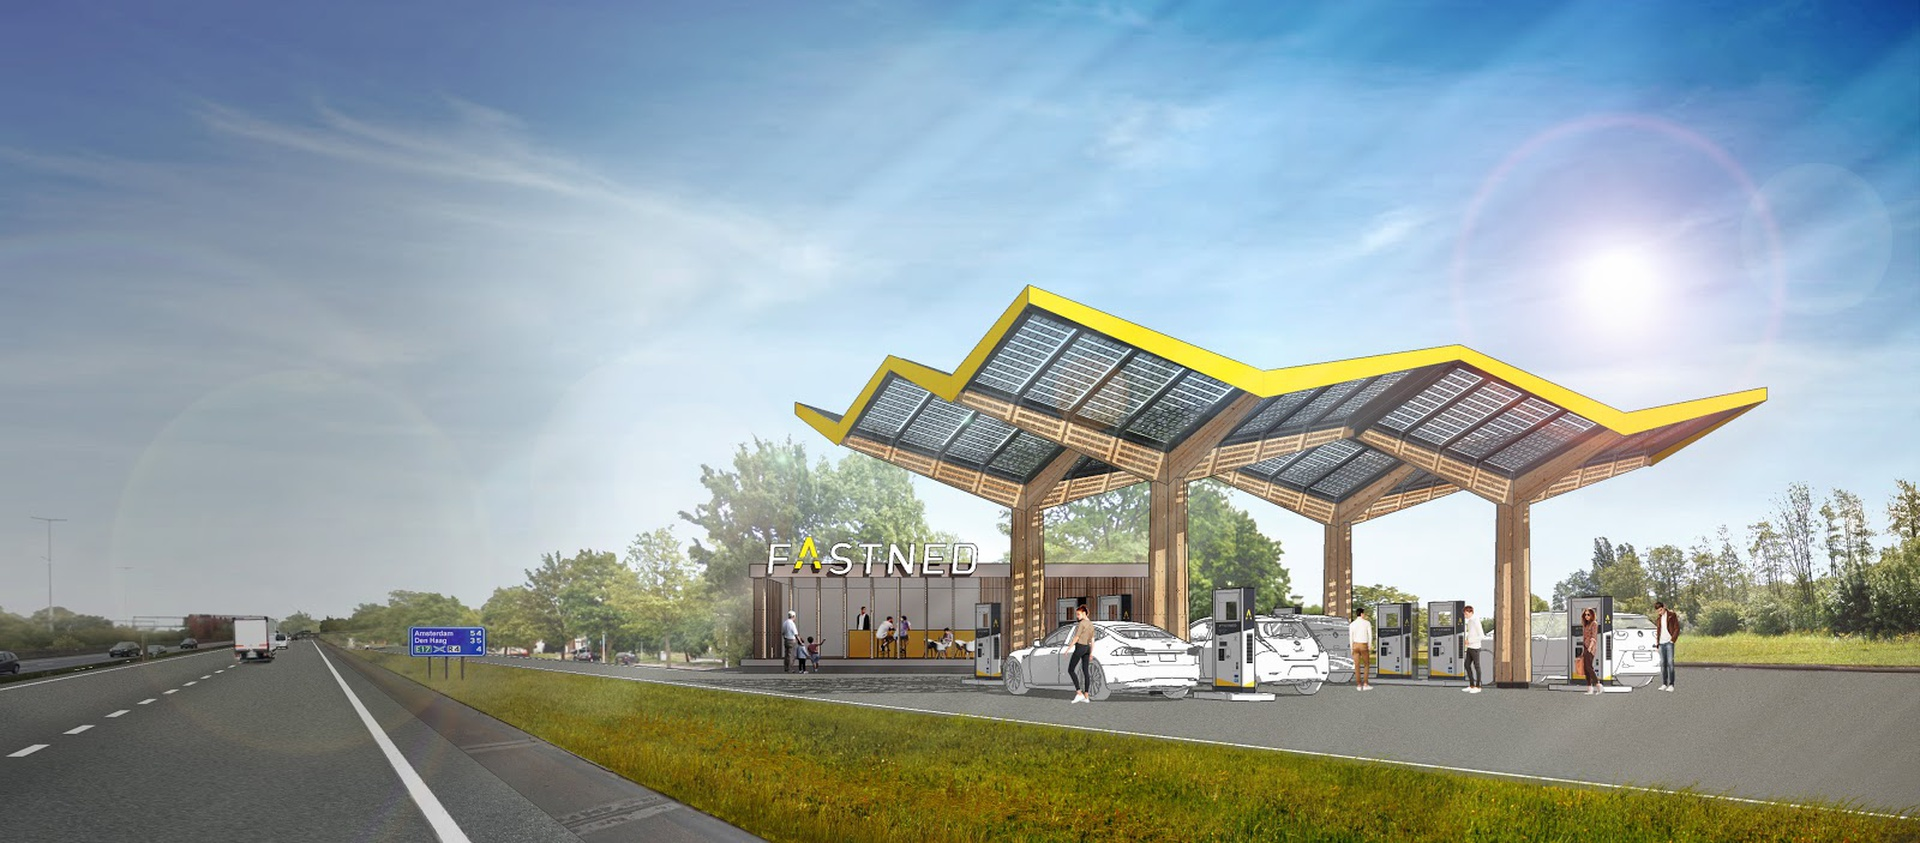 render_Fastned_station.jpg